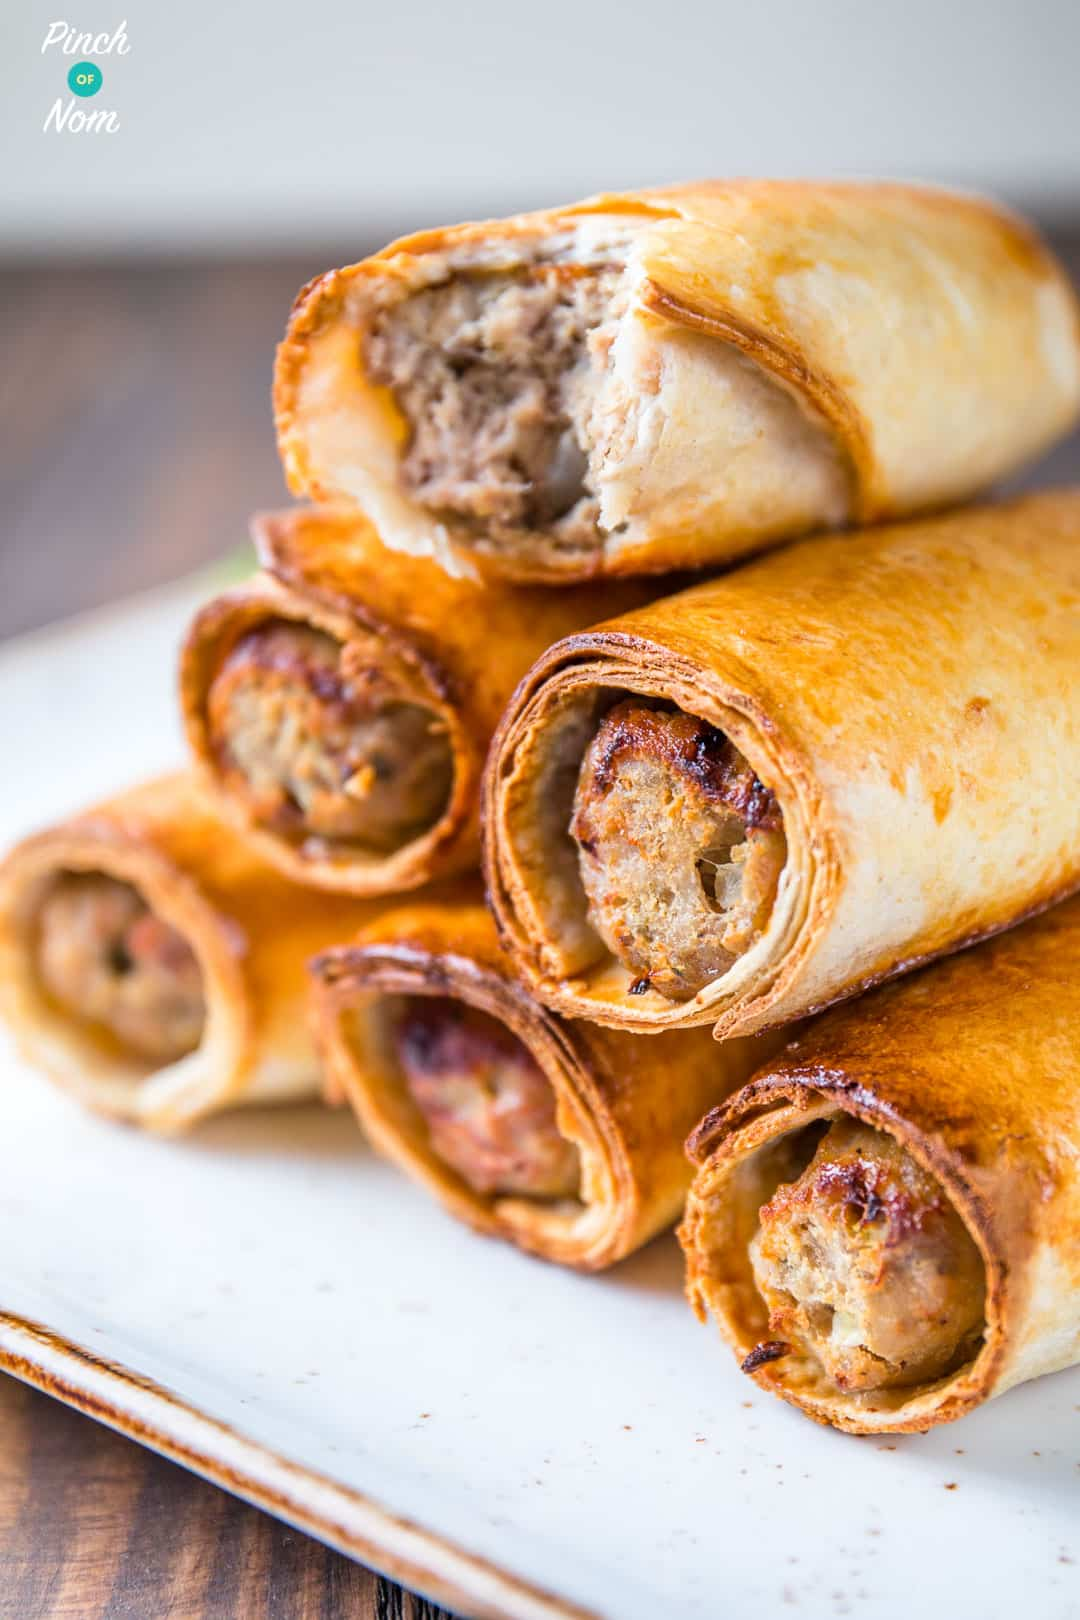 Syn Free Sausage Rolls - Are Weight Watchers Wraps Still a Healthy Extra? | Slimming World